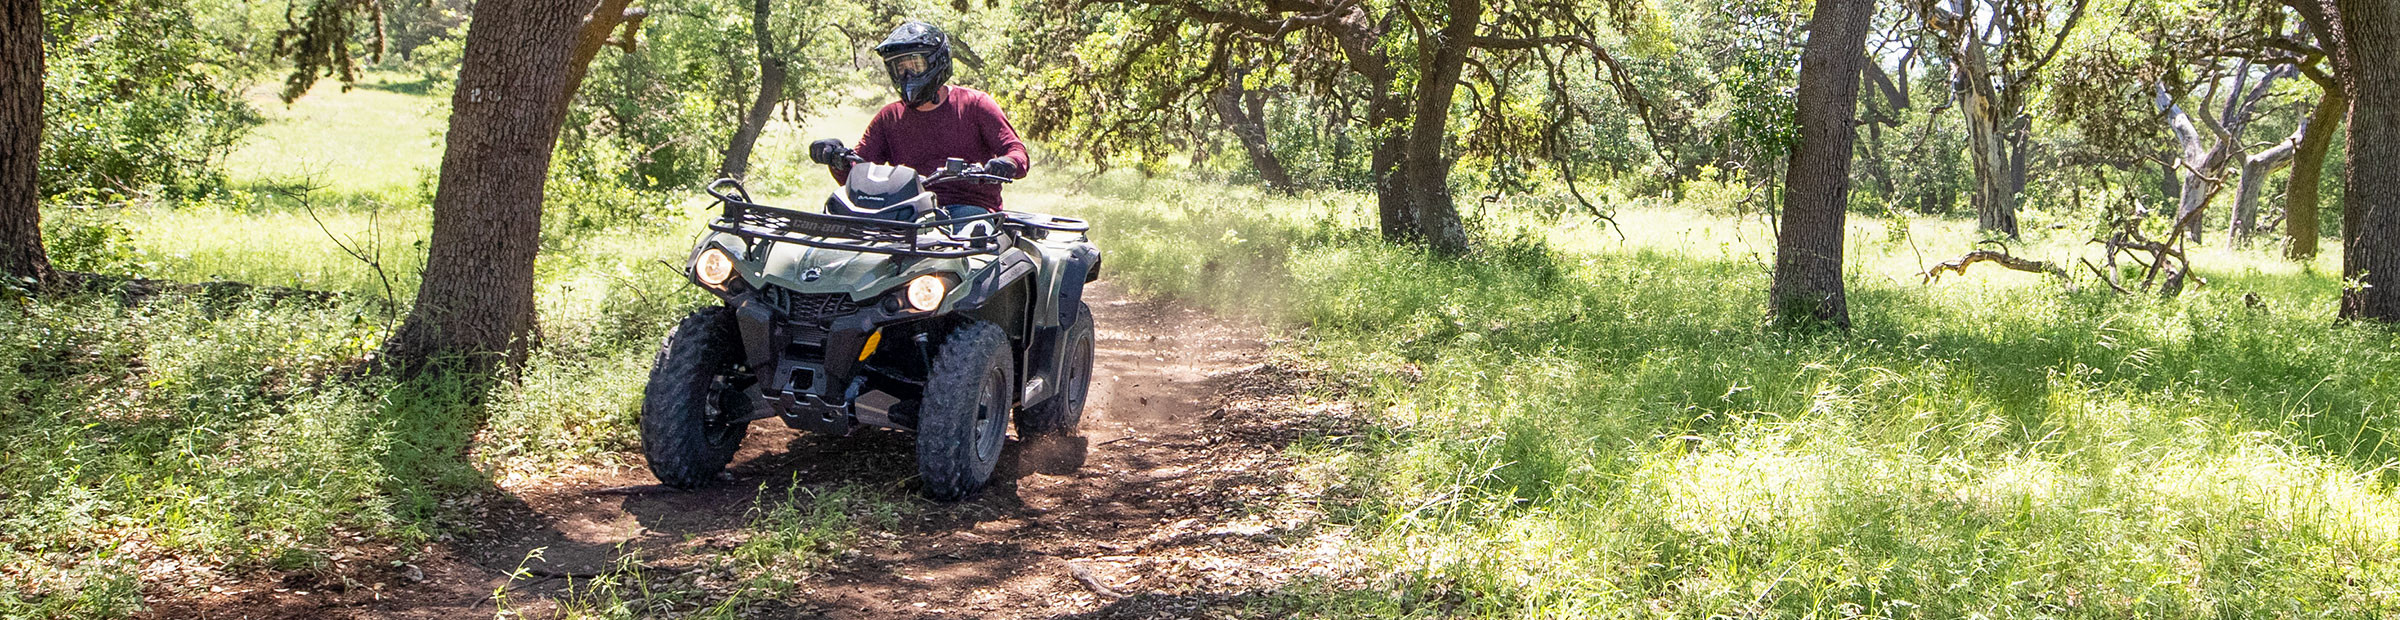 2021 Can-Am all-terrain vehicles